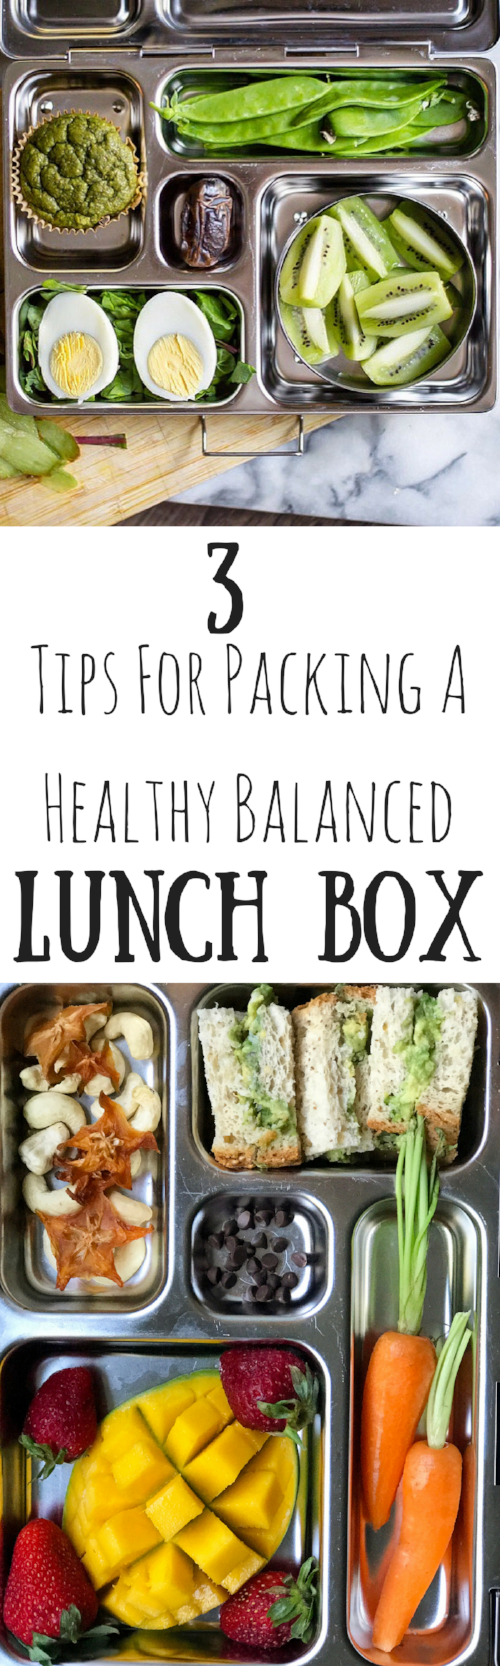 3 Tips For Packing A Healthy Balanced Lunch Box